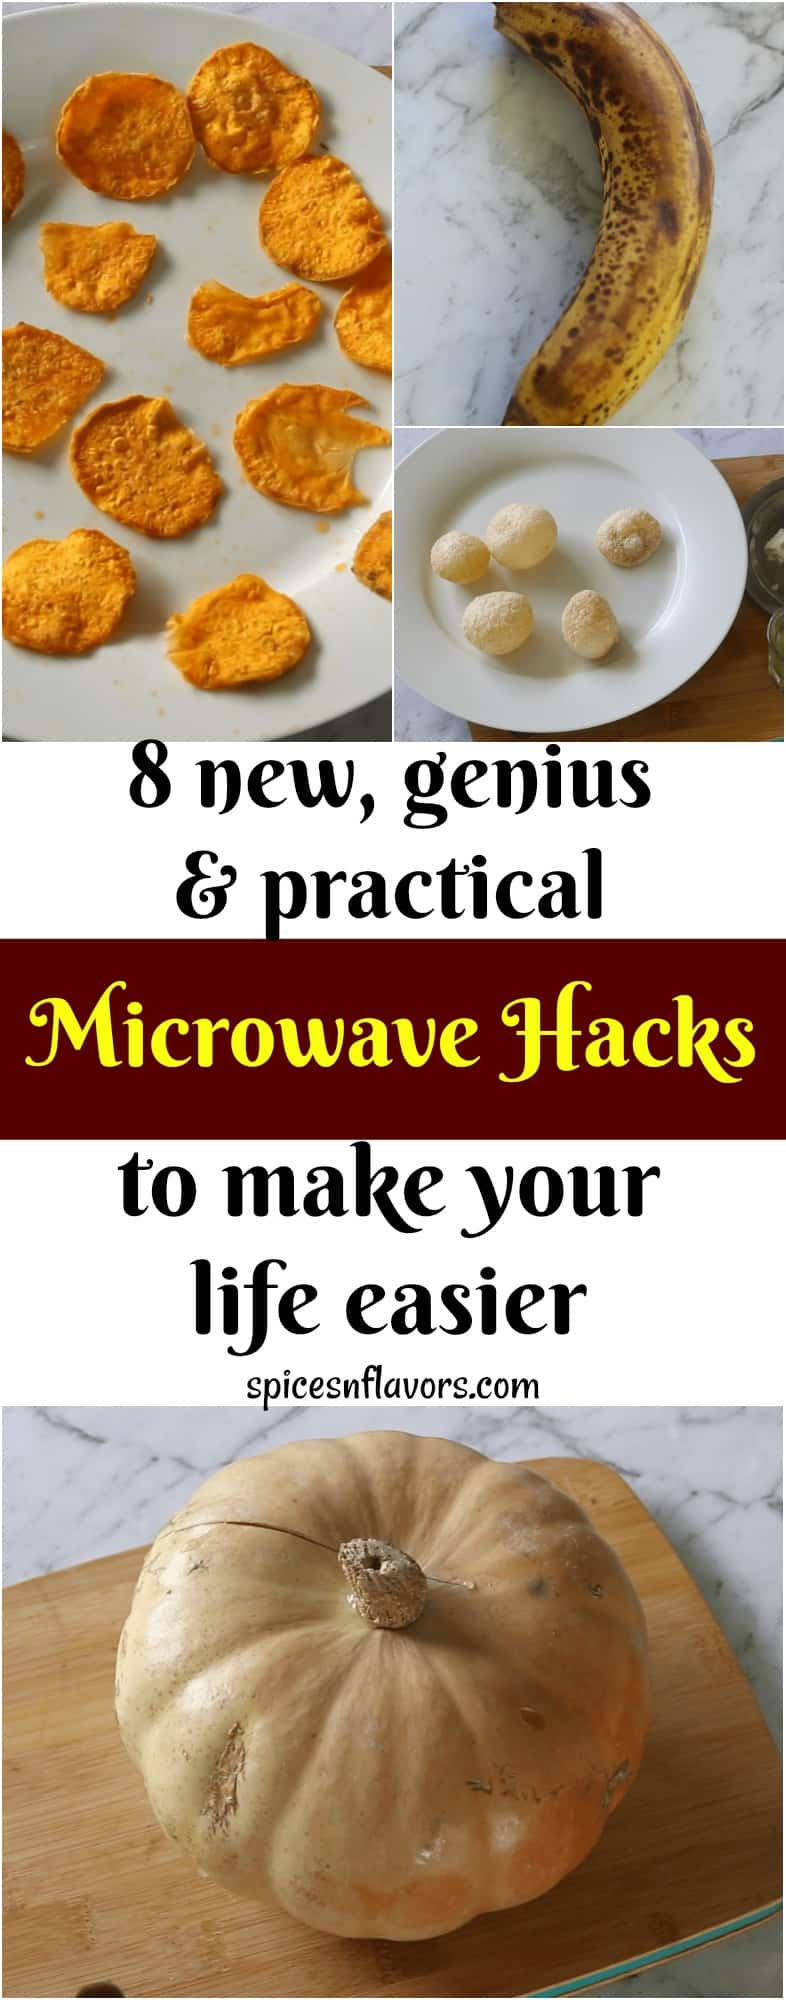 pin image of 8 new genius and practical microwave hacks to make your life easier